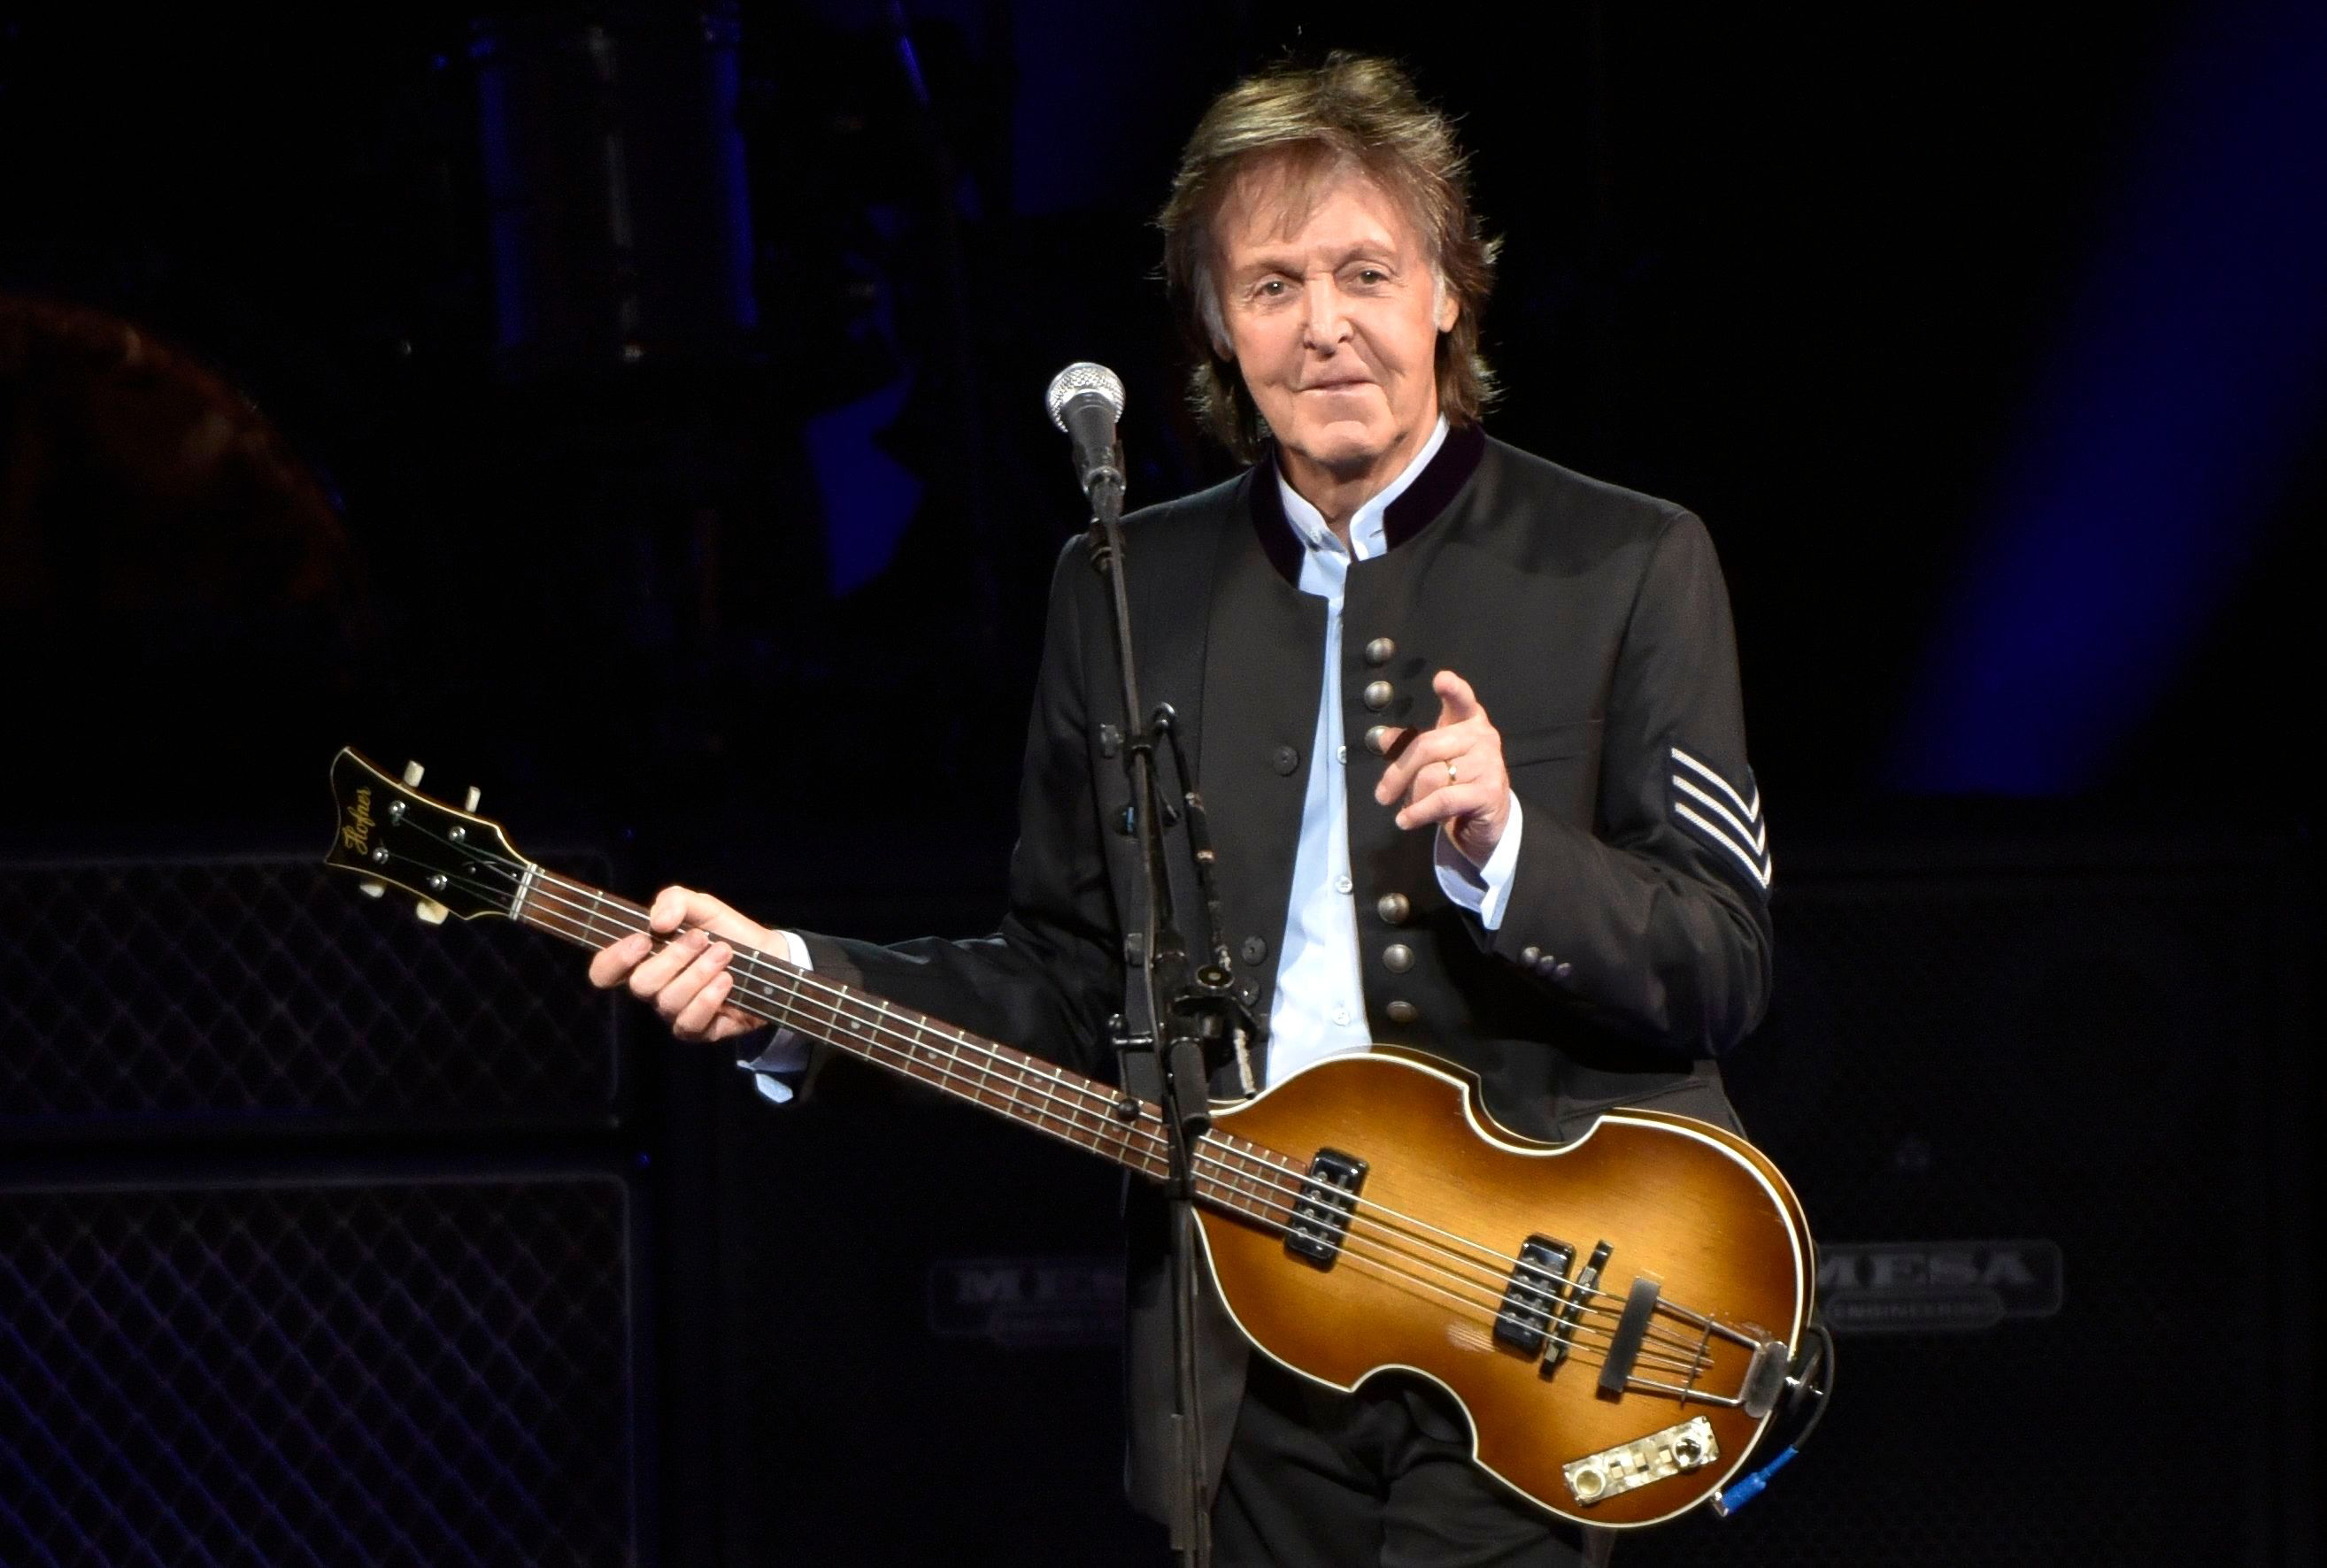 """Paul McCartney performs on the One on One Tour at the Hollywood Casino Amphitheatre in Tinley Park, Ill. It was a magical mystery tour as McCartney led James Corden through his hometown during a """"Carpool Karaoke"""" segment on CBS' """"Late Late Show."""" The program, wrapped up a weeklong stay in London and the Beatles legend joined Corden for a drive around LiverpoolPaul McCartney Carpool Karaoke, Tinley Park, USA - 27 Jul 2017"""